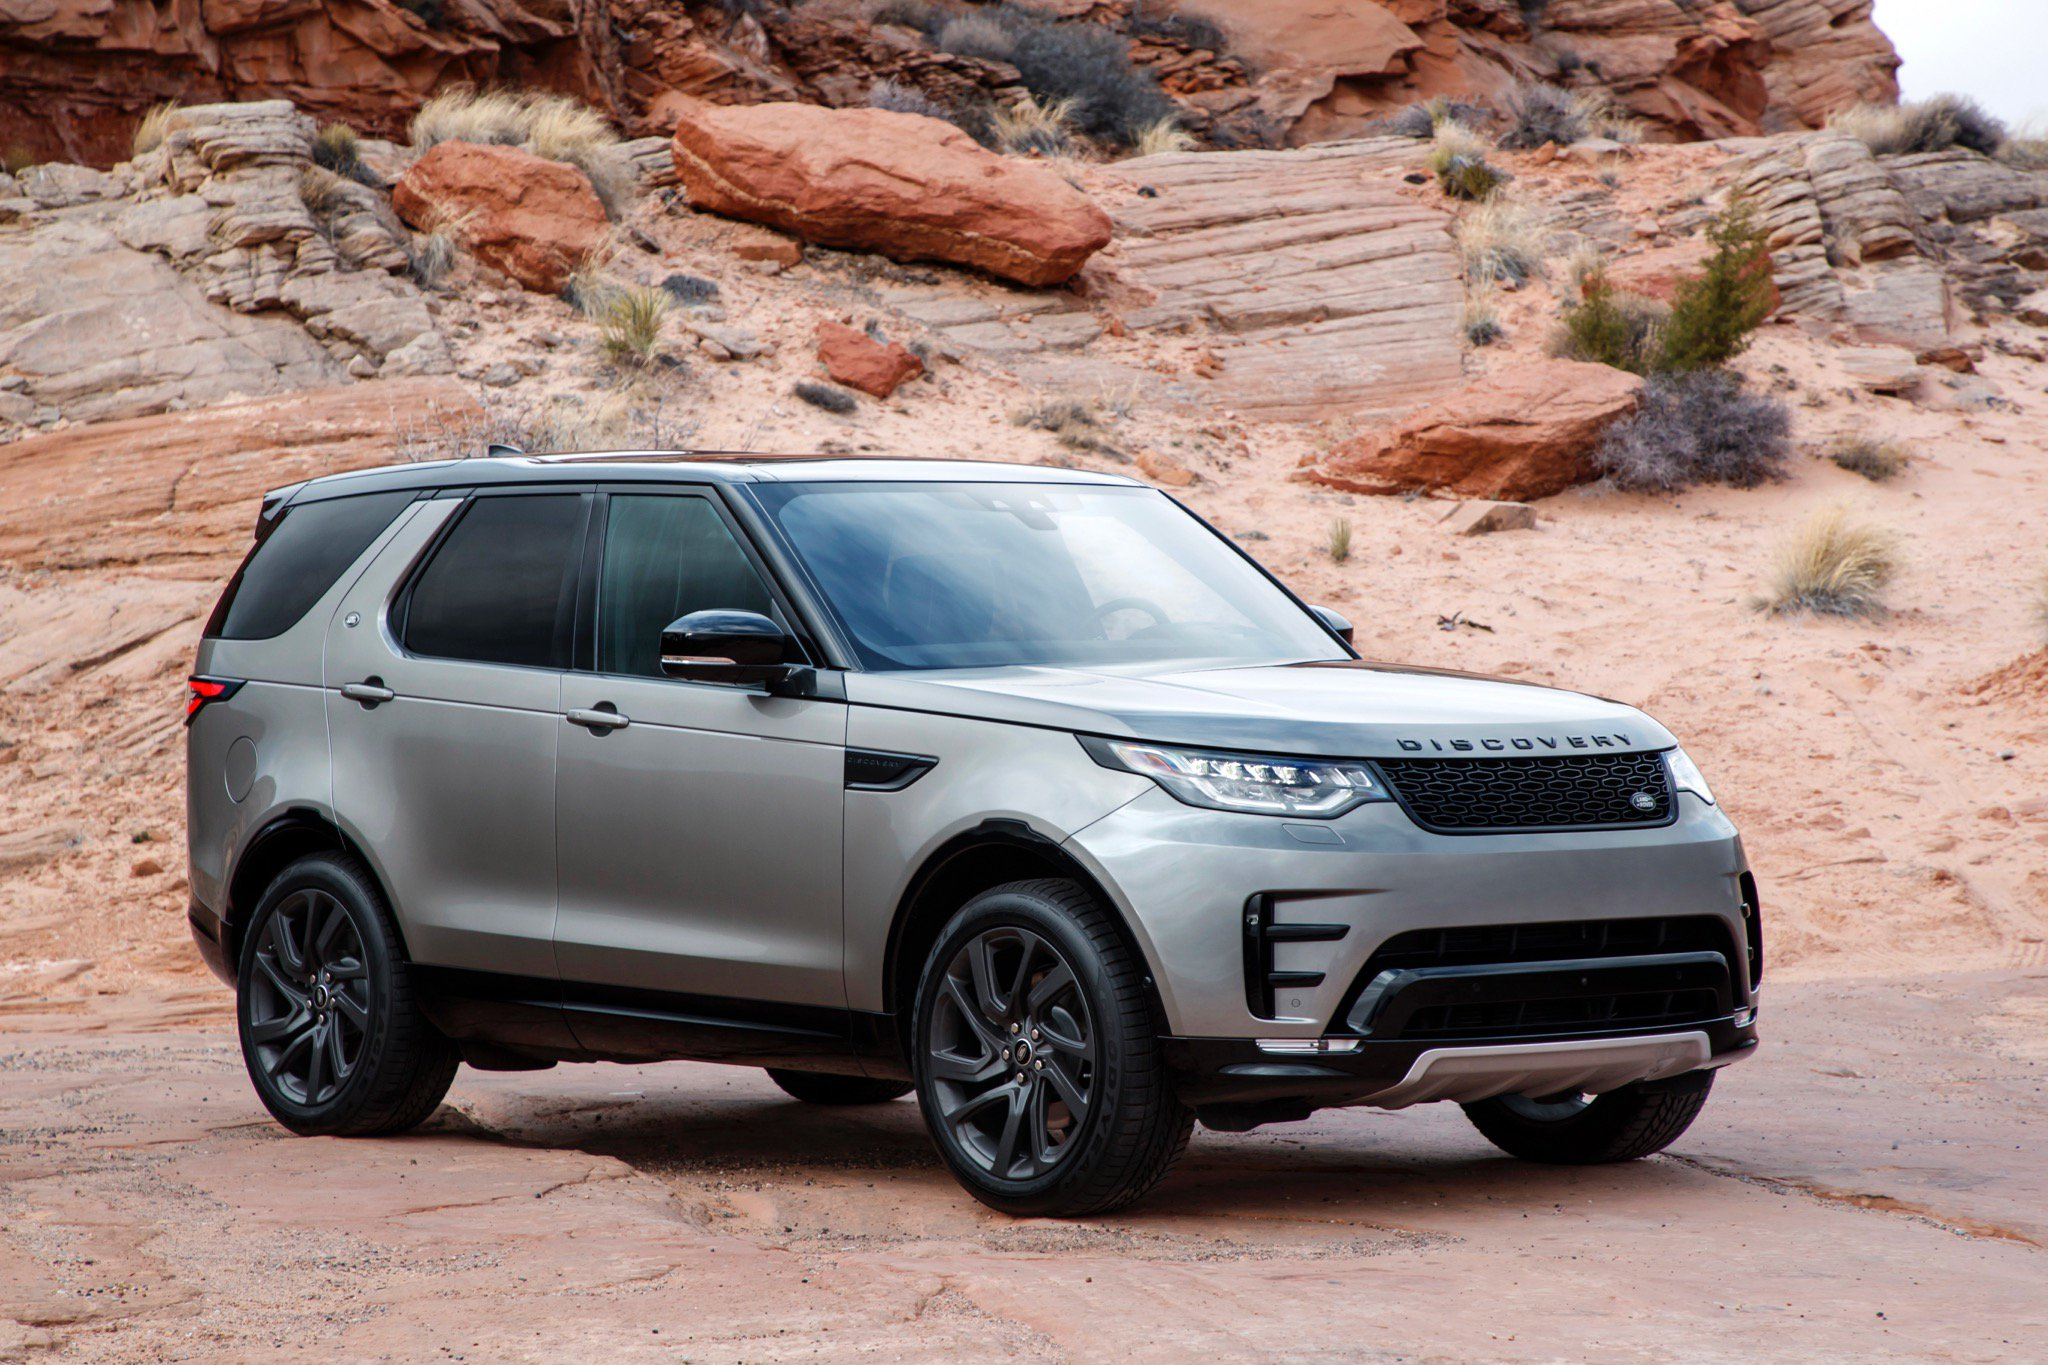 Land-rover discovery photo - 10